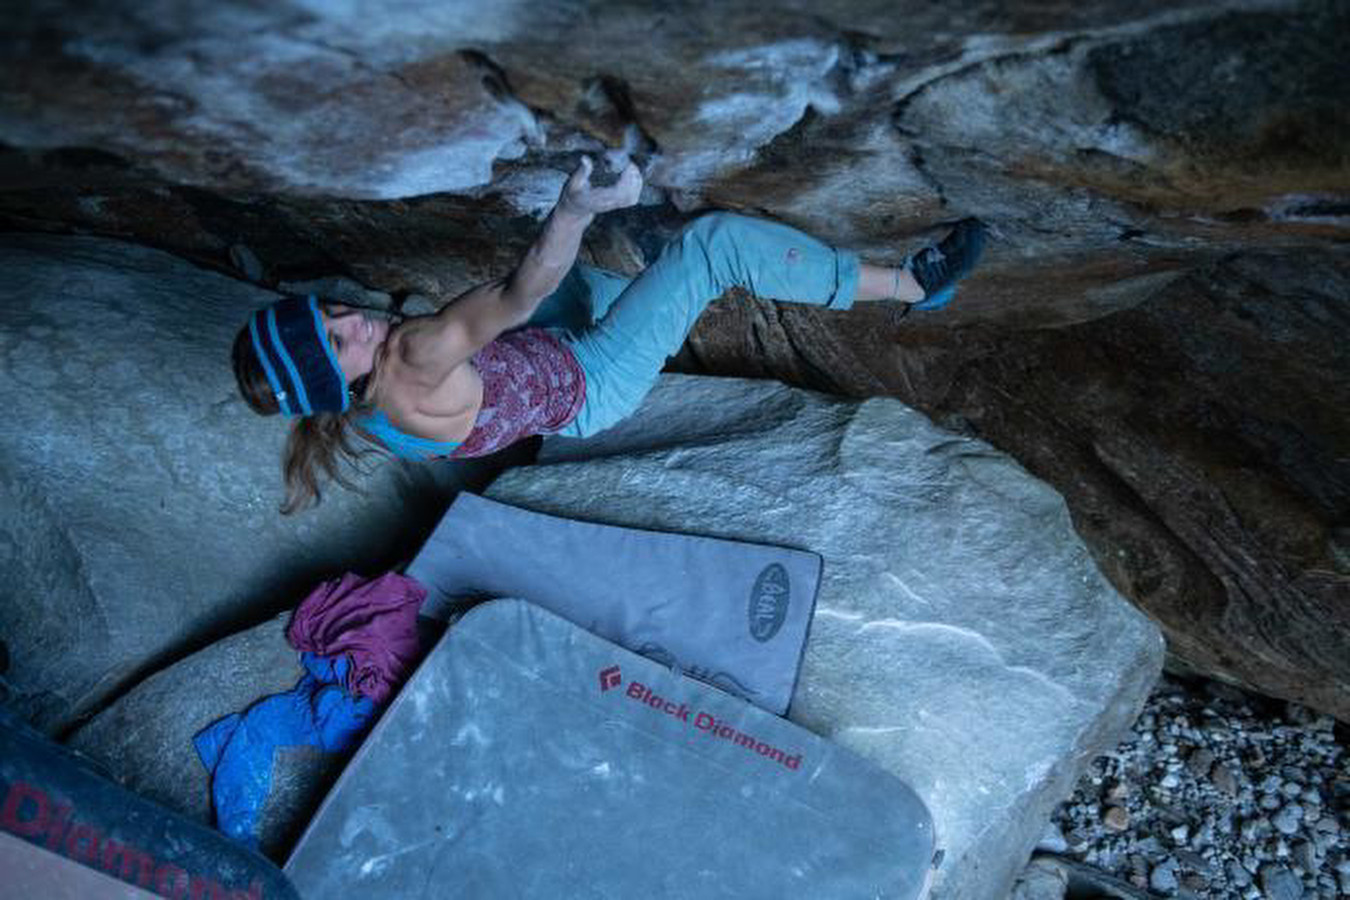 Salamandre 8A (+), 8A's and a 7C+ flash by Camilla Moroni